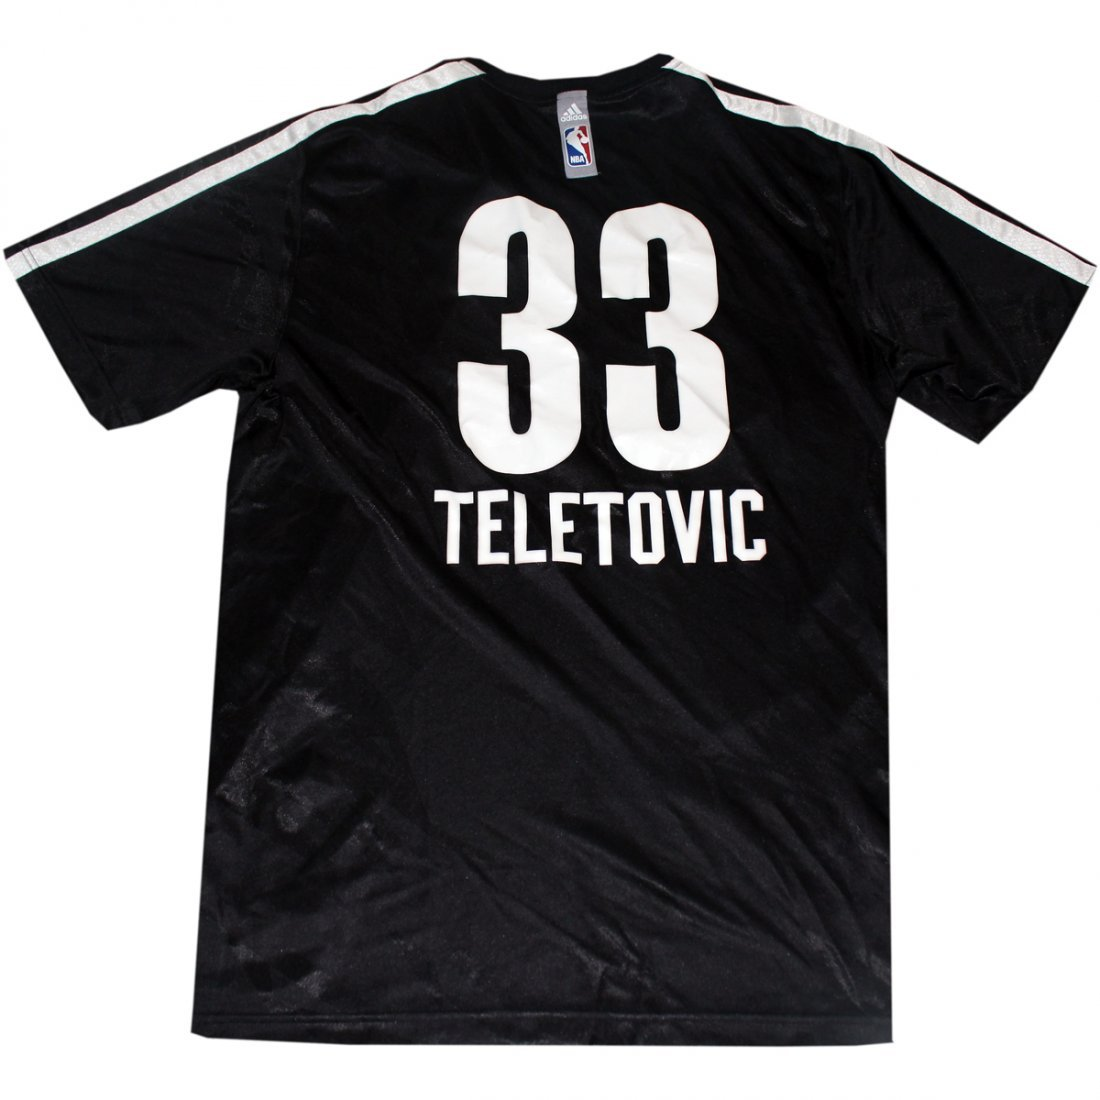 Mirza Teletovic Shirt - Brooklyn Nets 2013-2014 Season